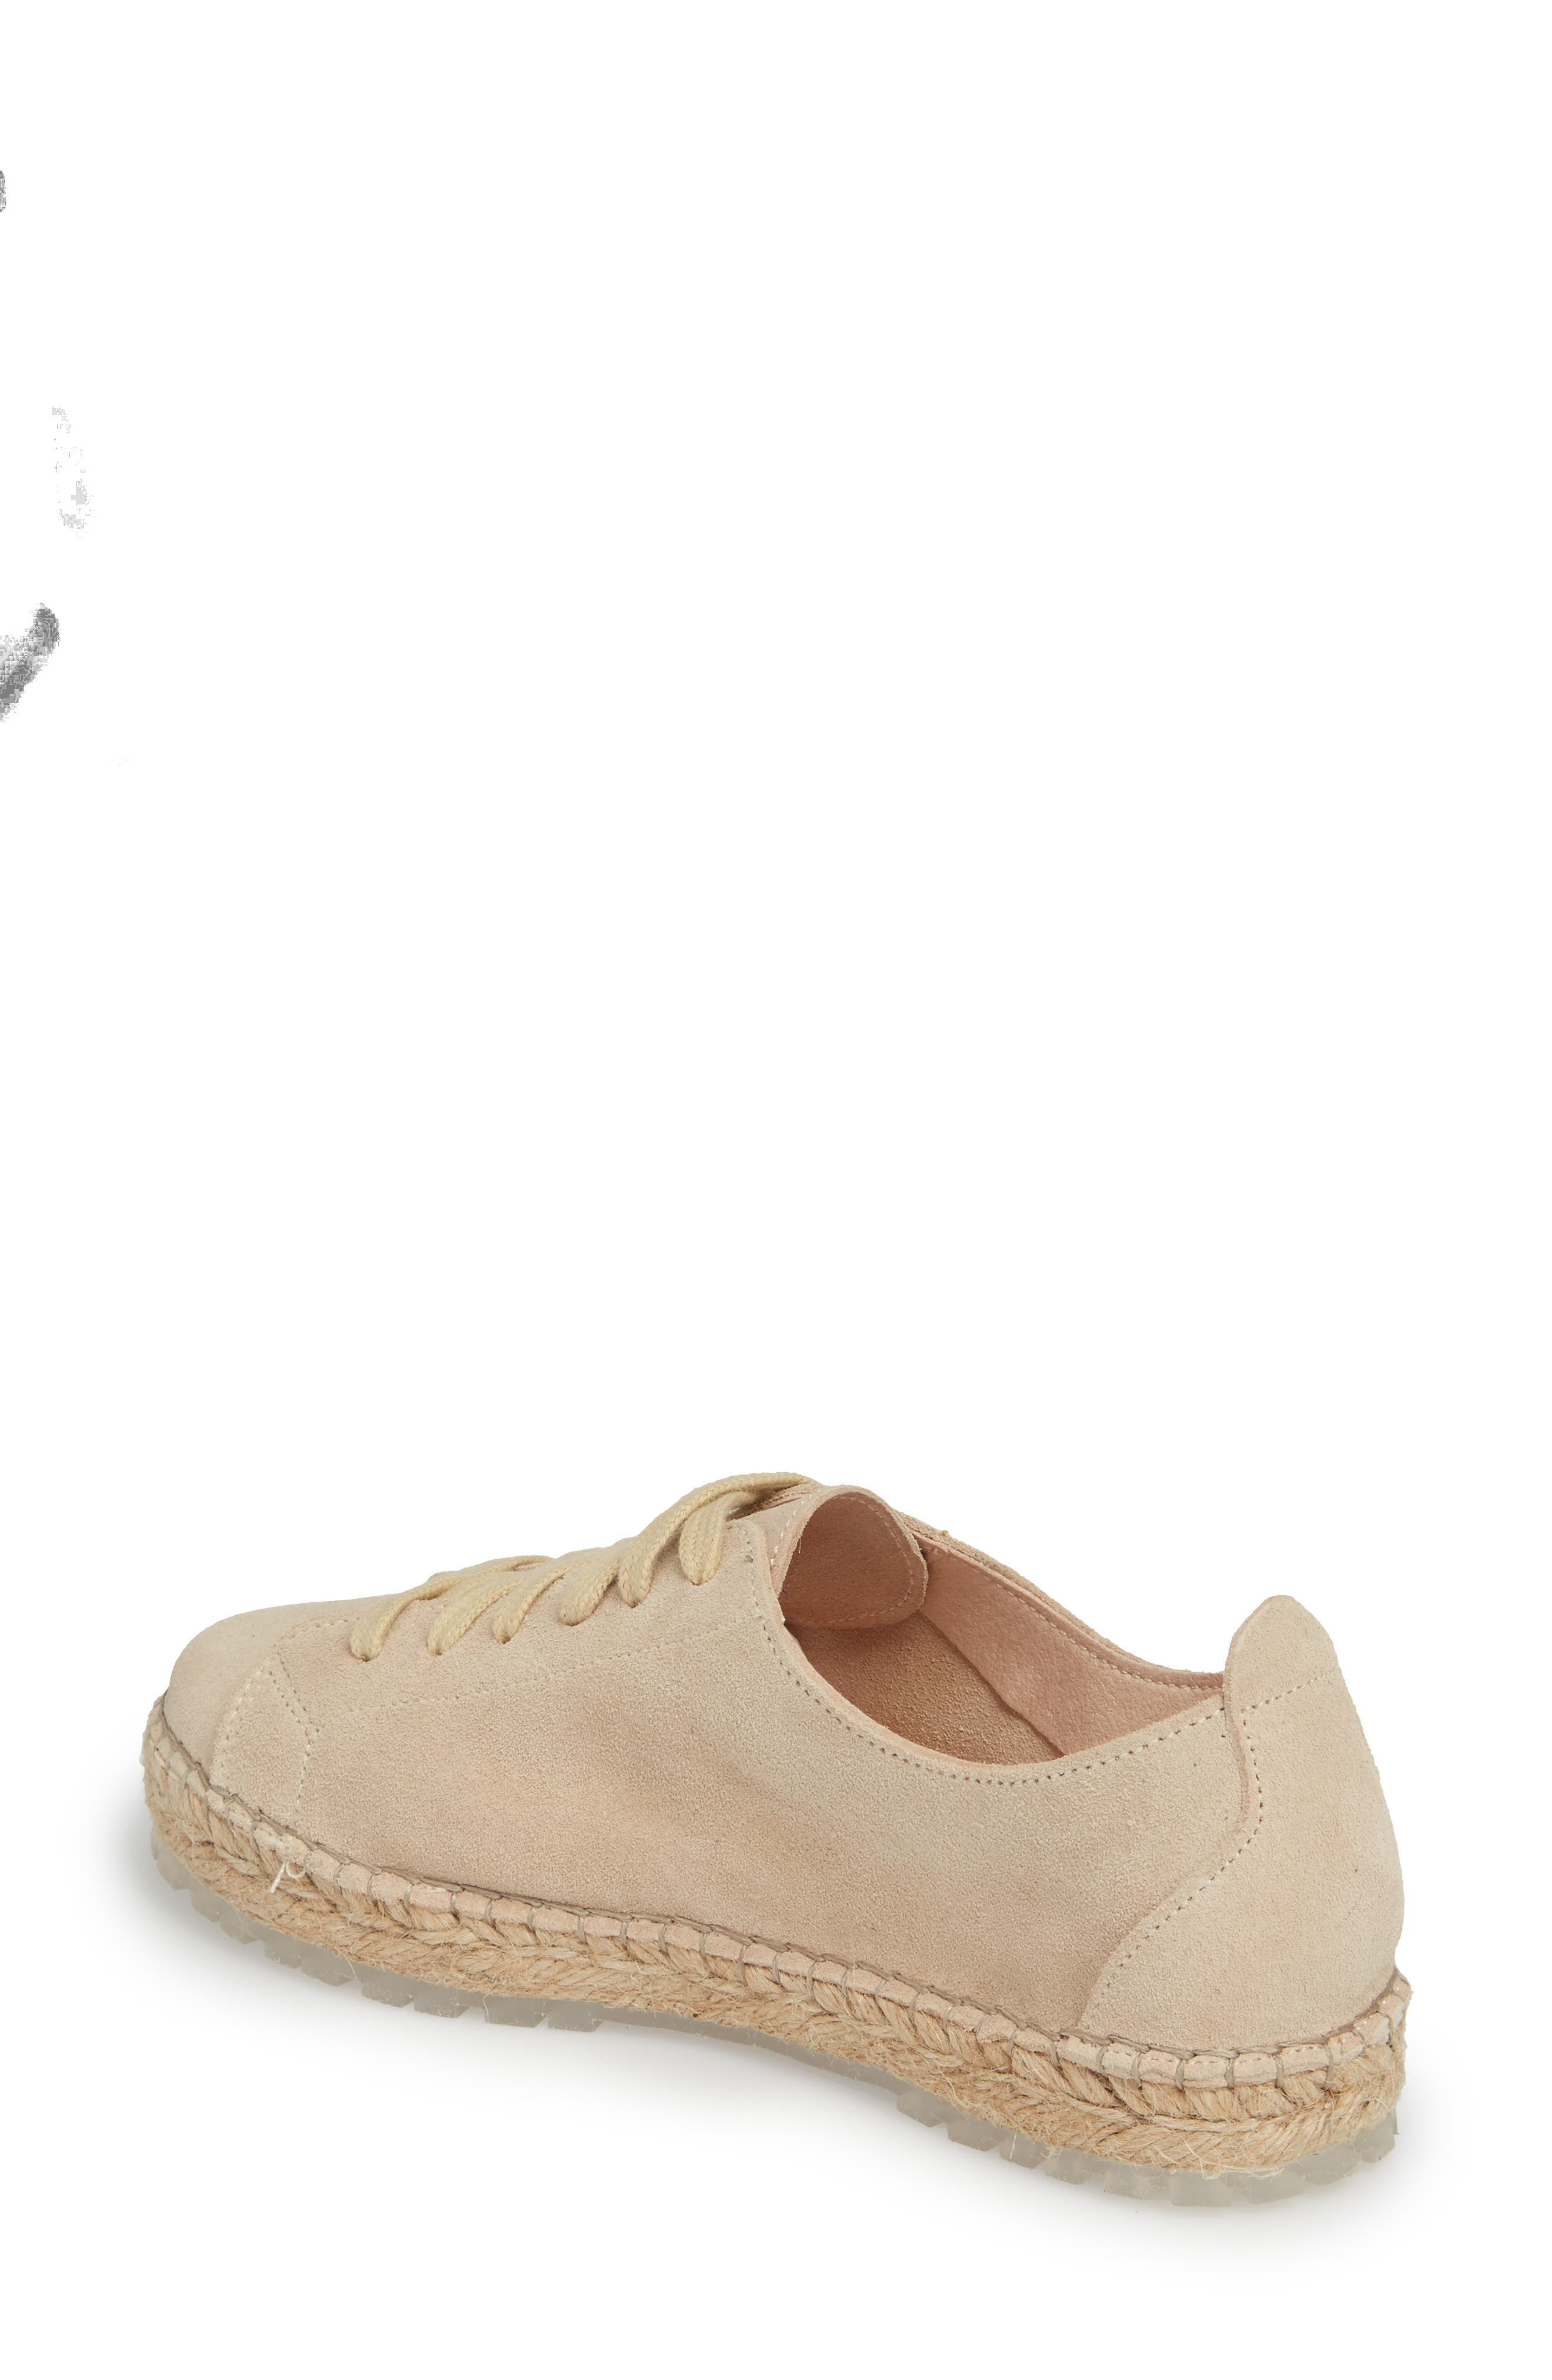 Zane Espadrille Sneaker,                             Alternate thumbnail 2, color,                             Taupe Suede